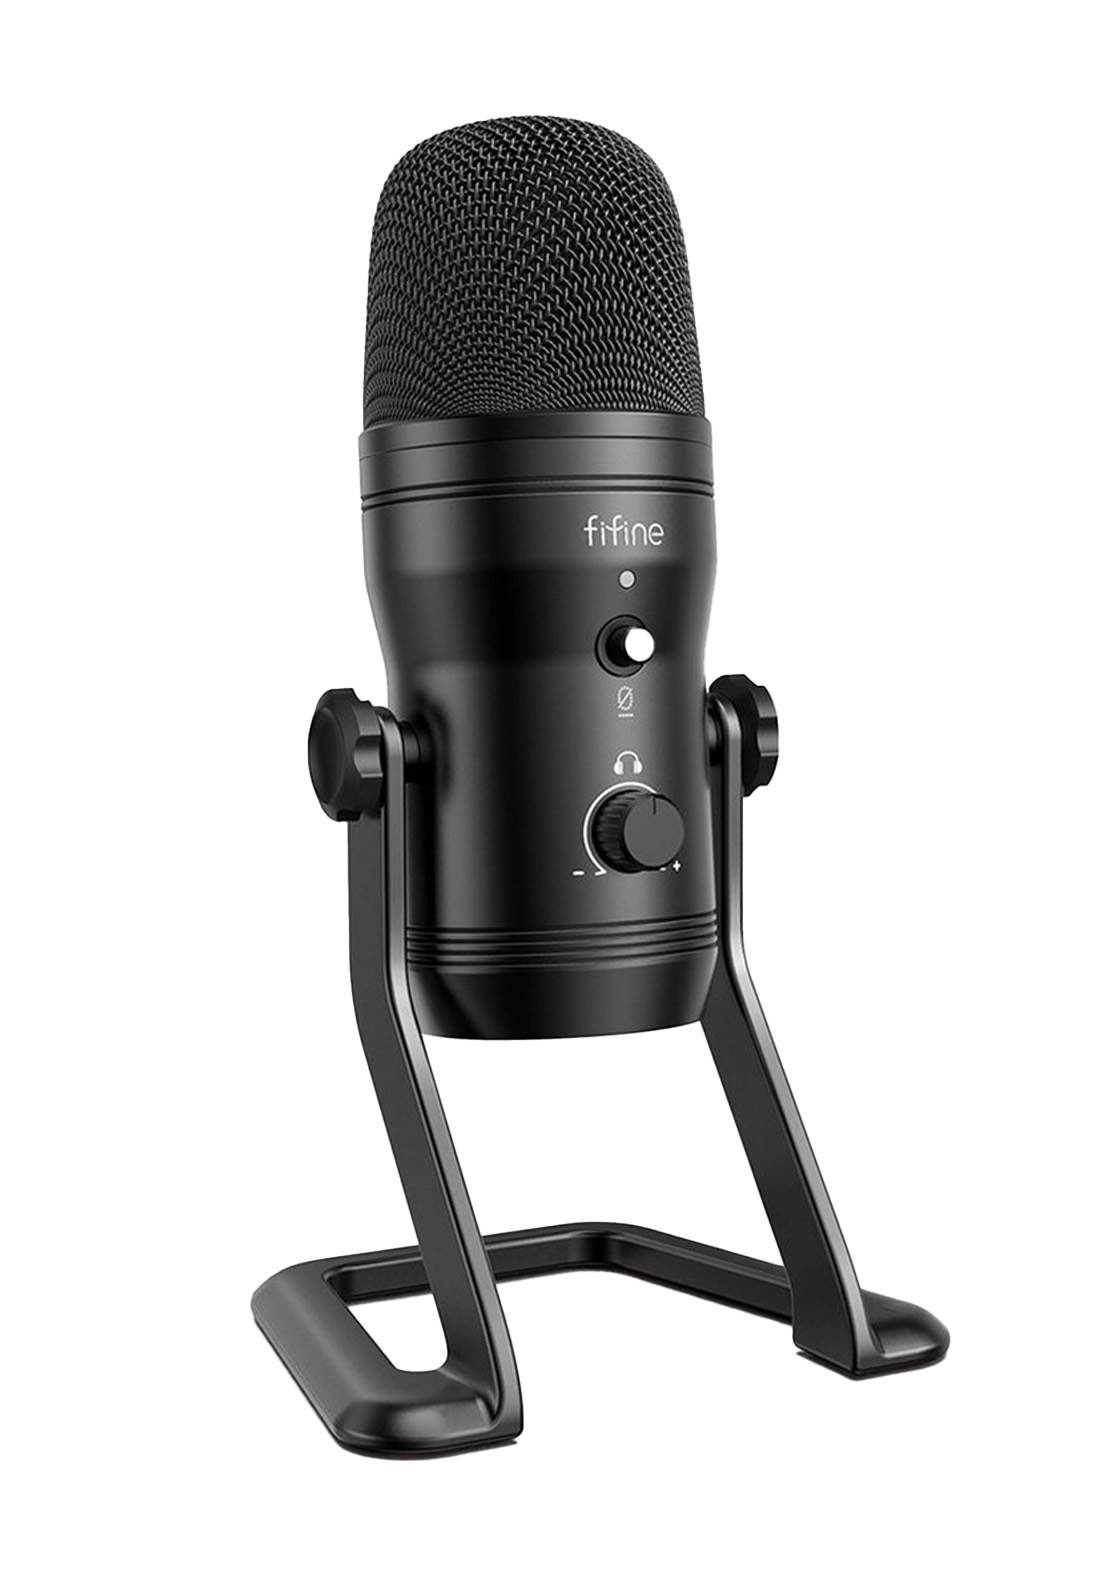 Fifine K690 USB Microphone for PC Recording and Broadcasting - Black